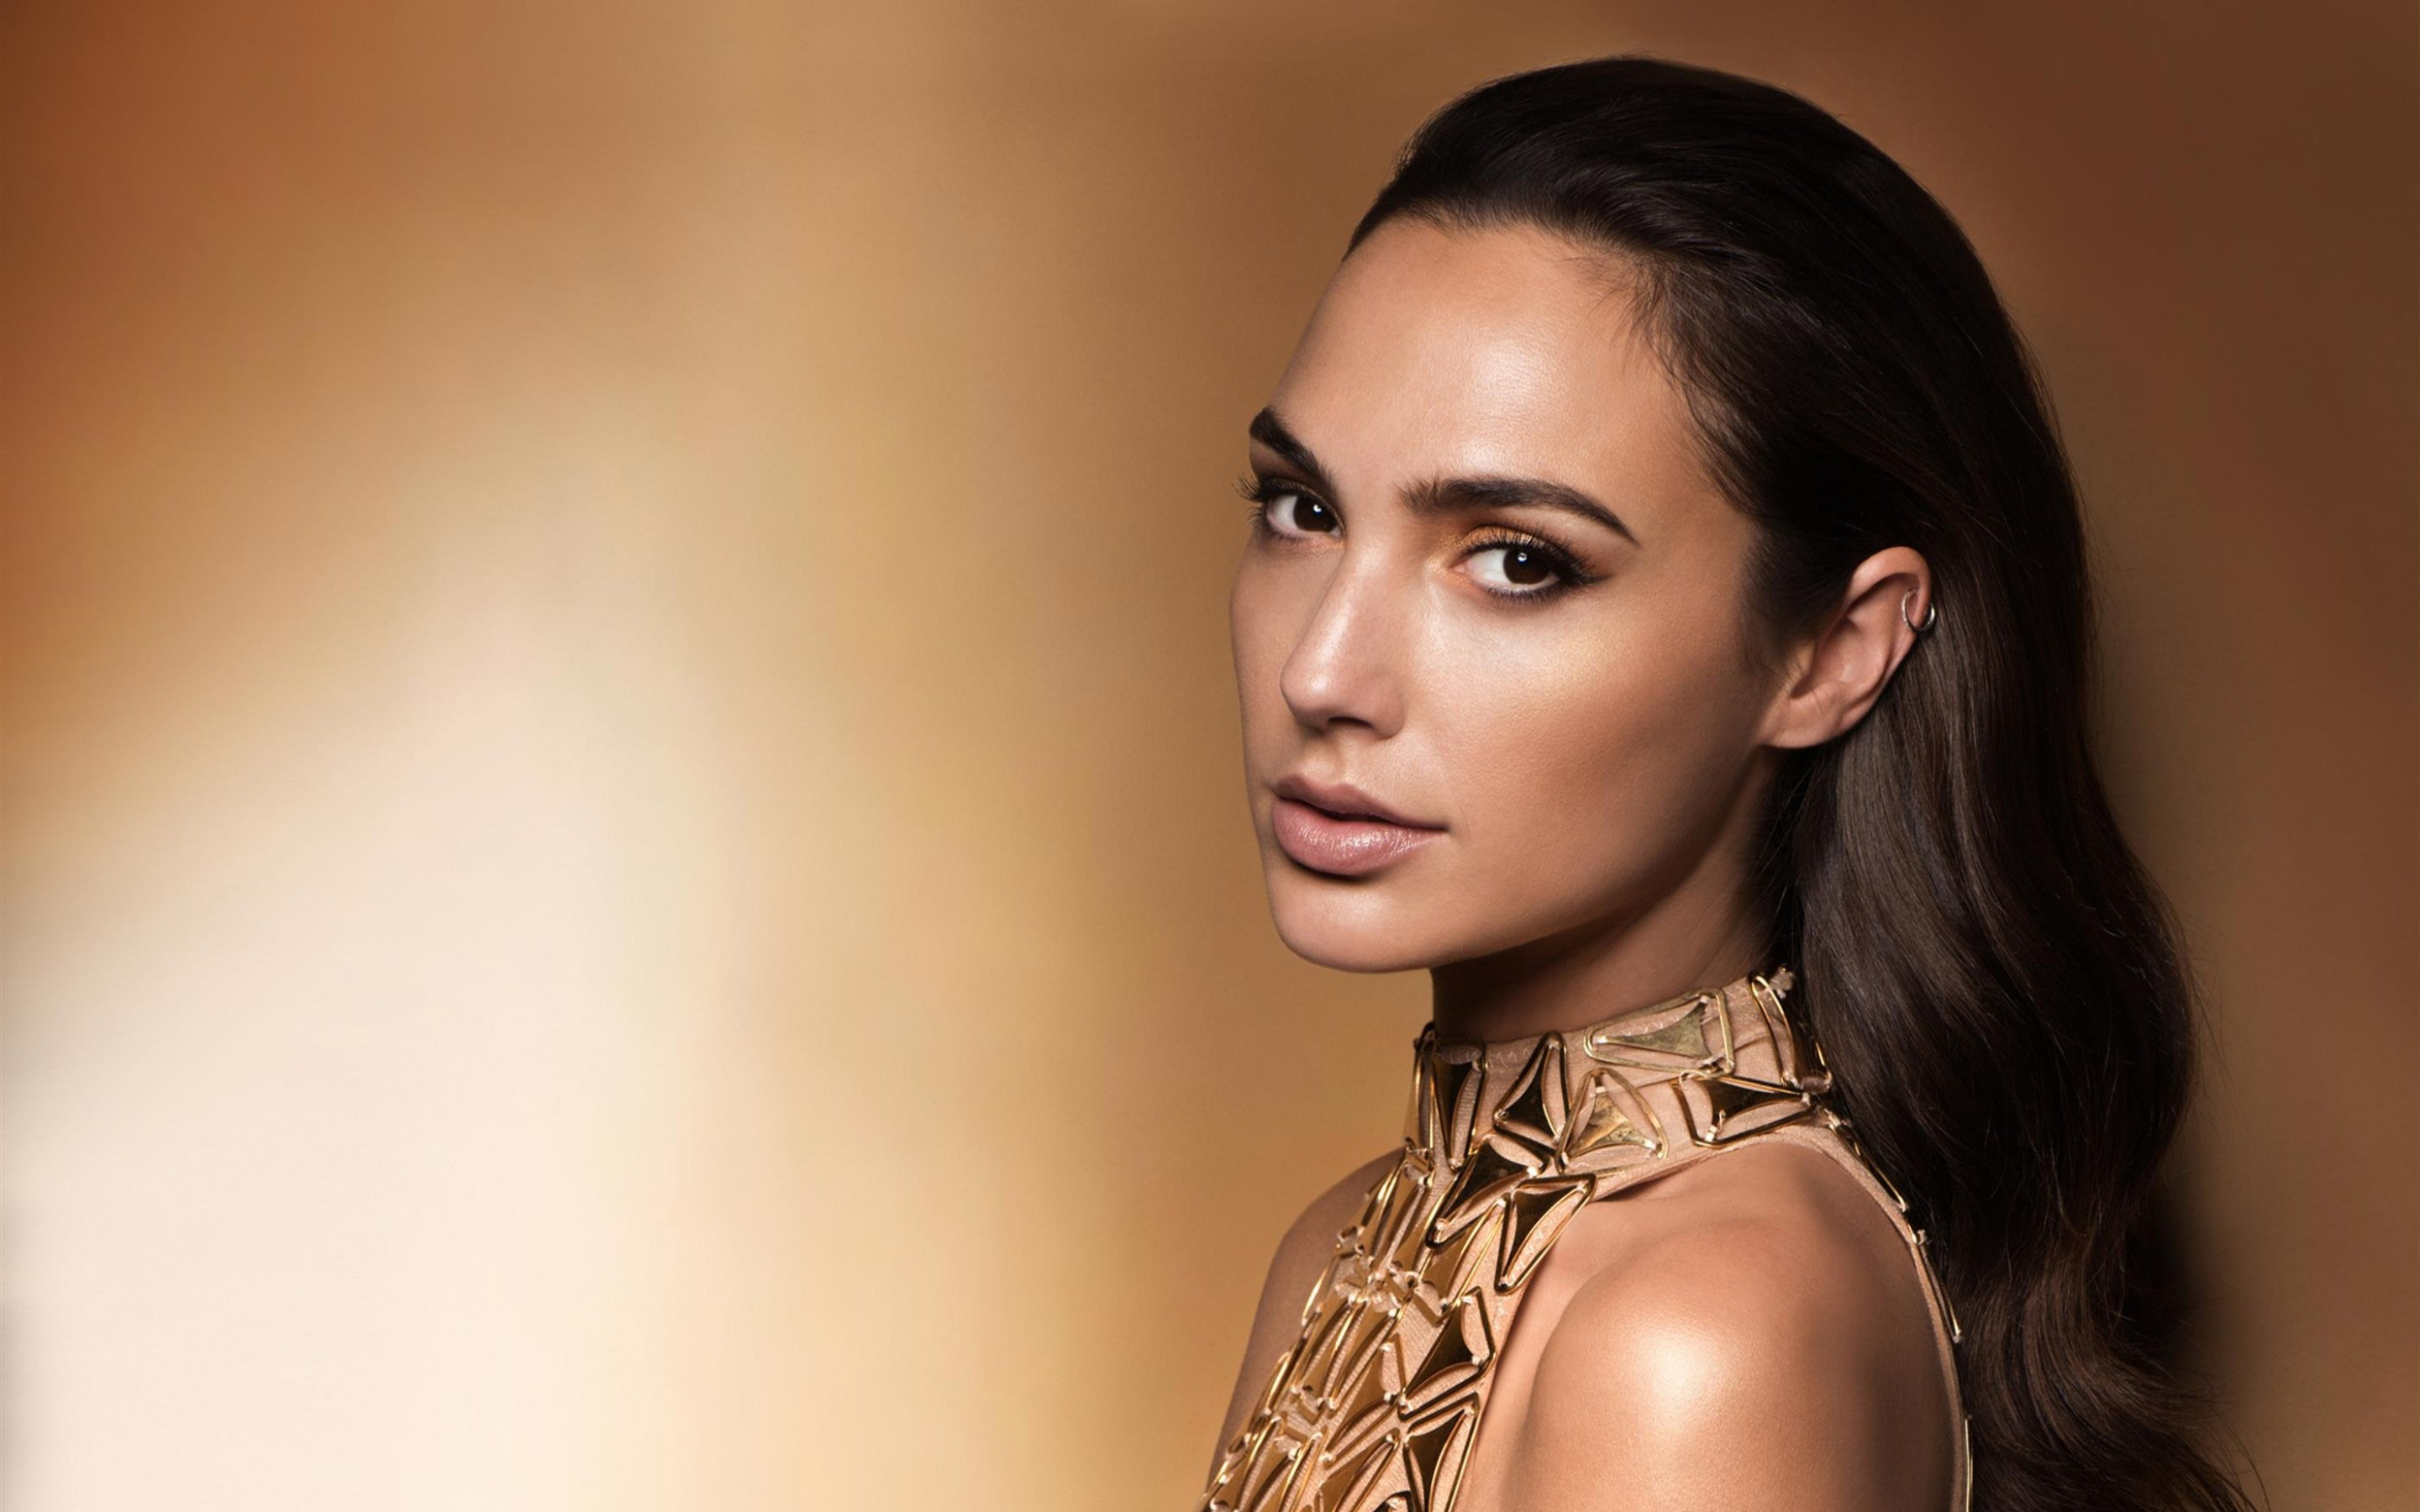 gal gadot celebrity widescreen wallpaper 62100